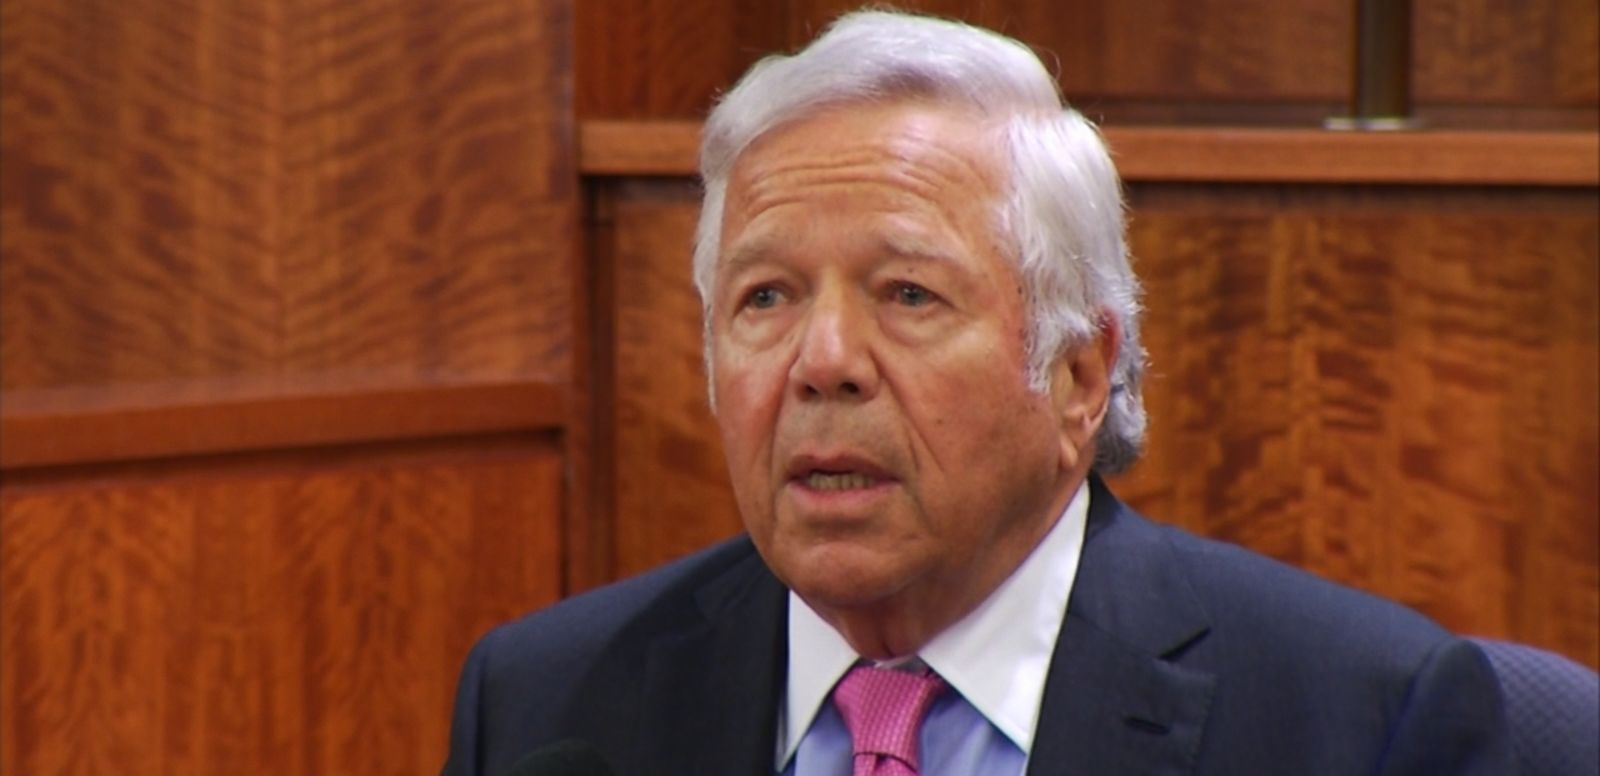 VIDEO: Kraft took the witness stand and testified that his former player Aaron Hernandez told him he was innocent of the murder of Odin Lloyd.